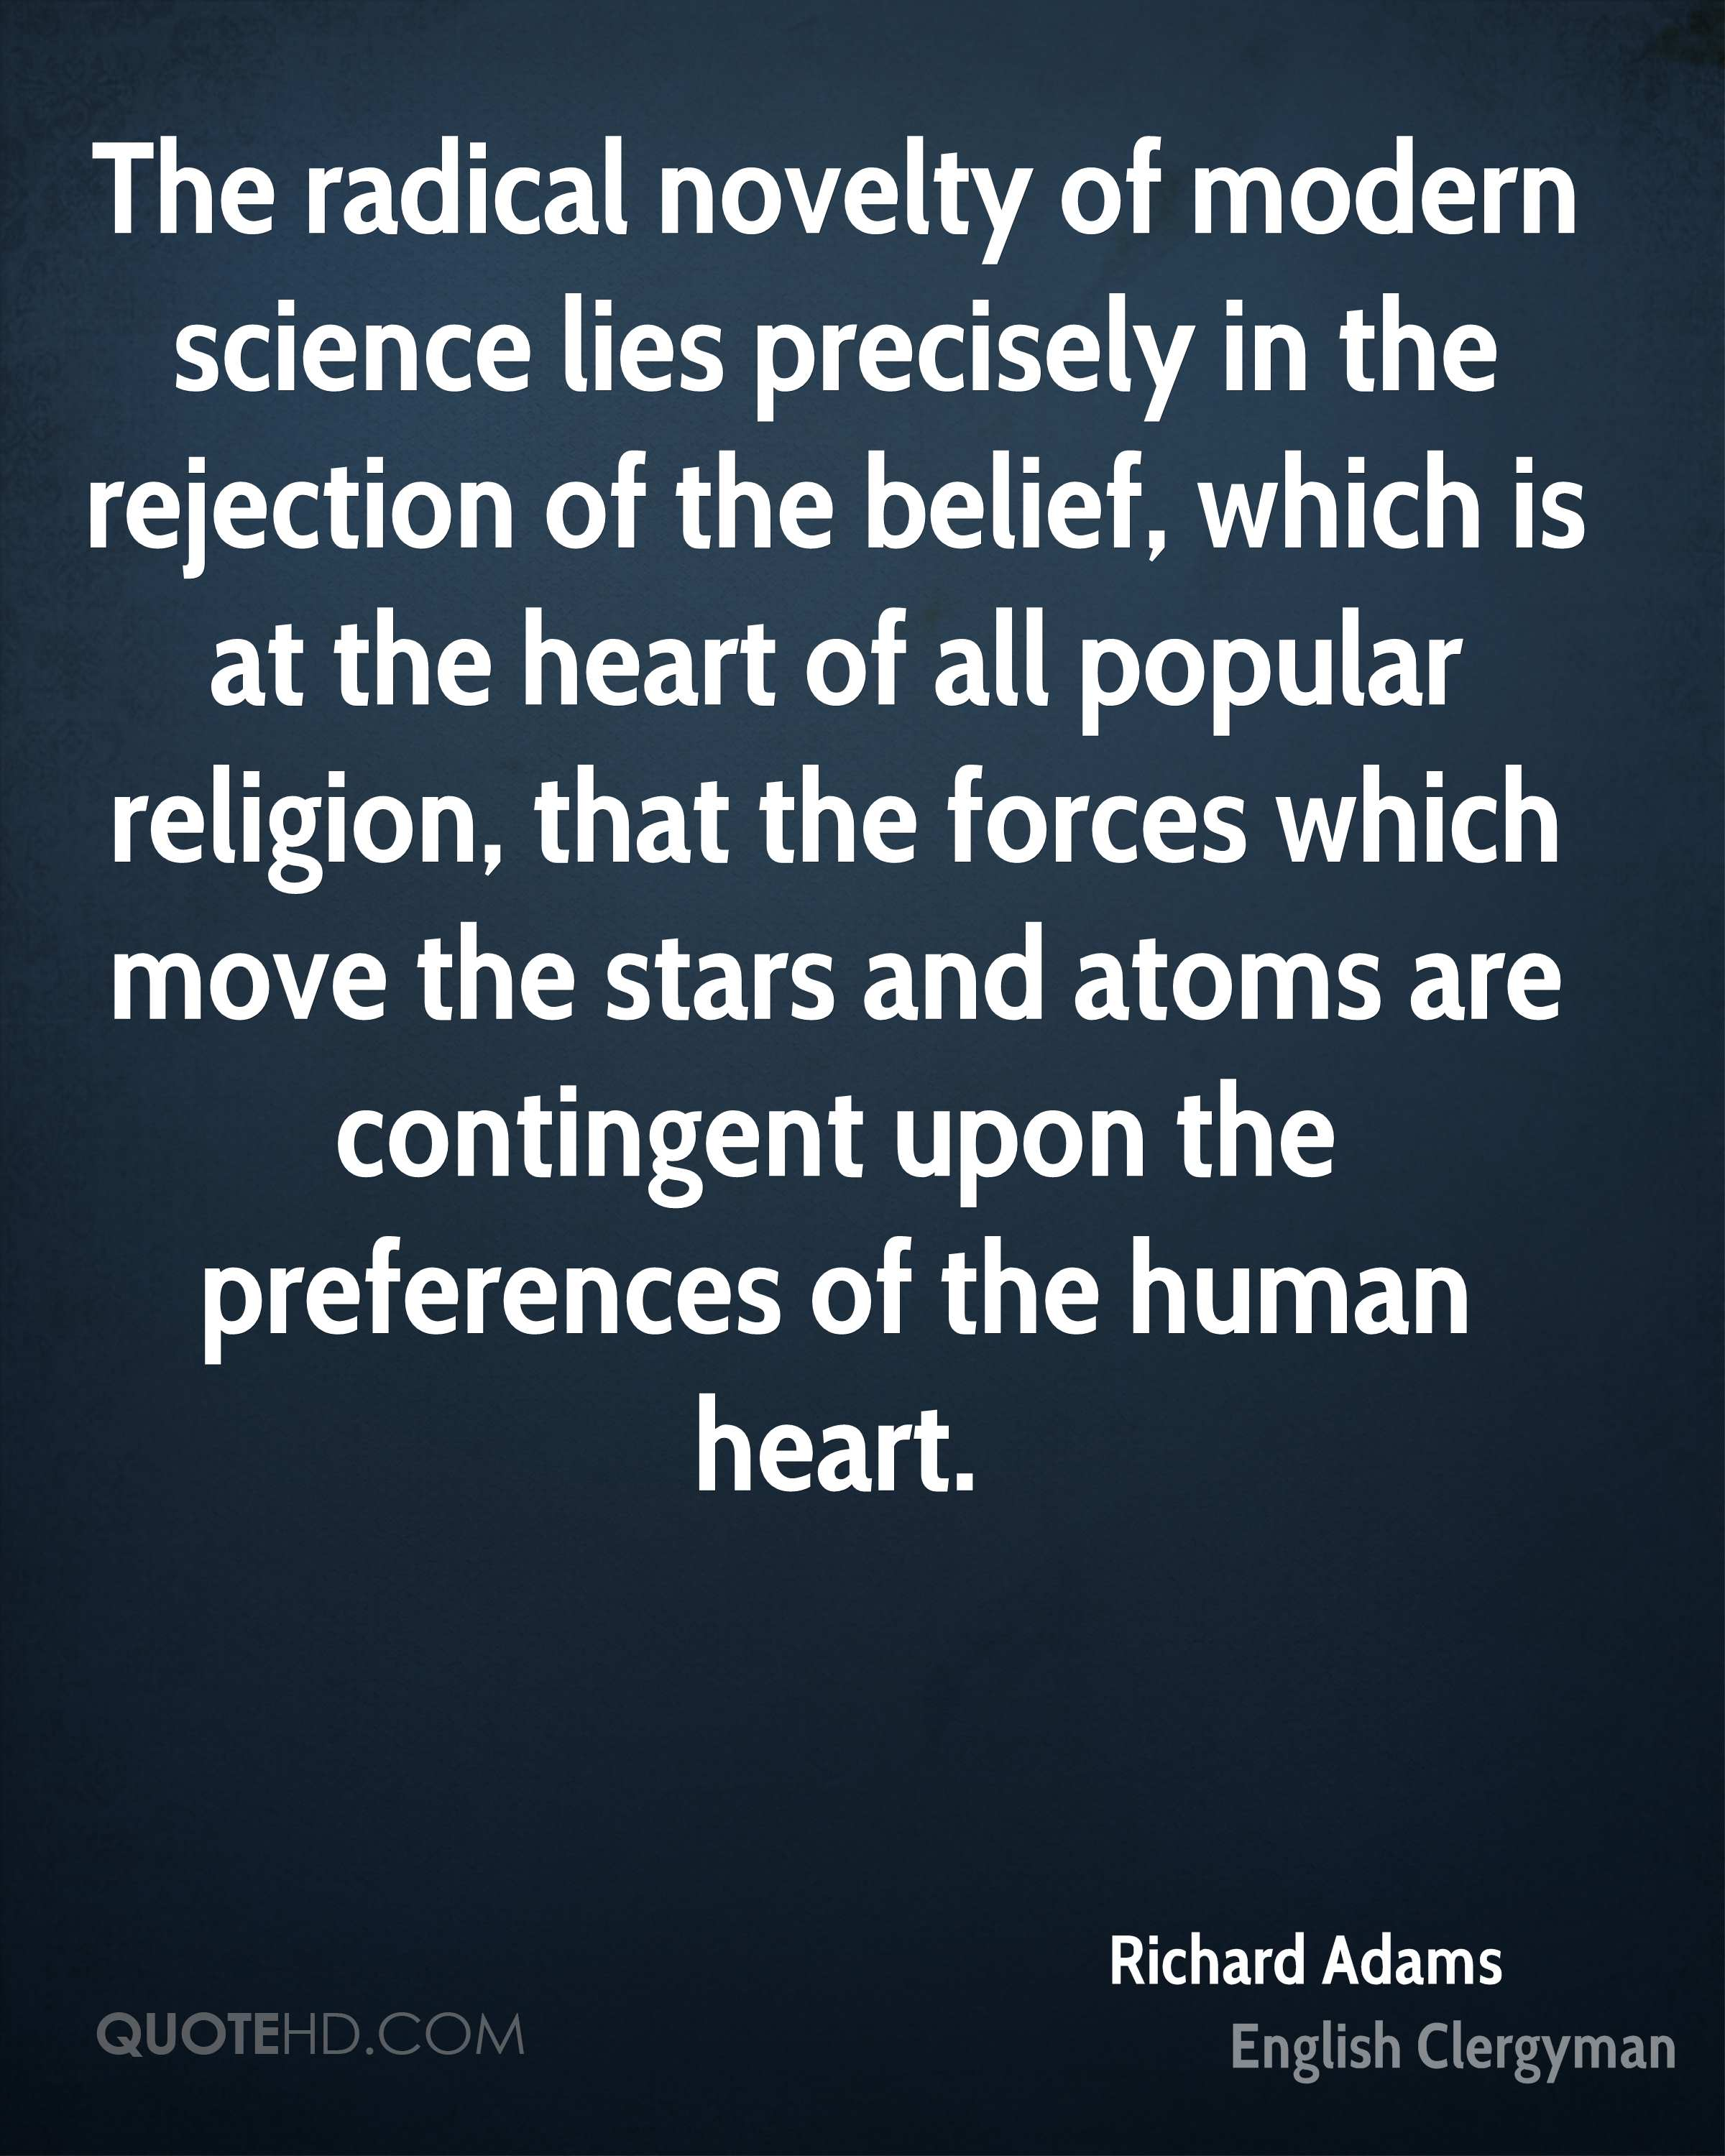 The radical novelty of modern science lies precisely in the rejection of the belief, which is at the heart of all popular religion, that the forces which move the stars and atoms are contingent upon the preferences of the human heart.